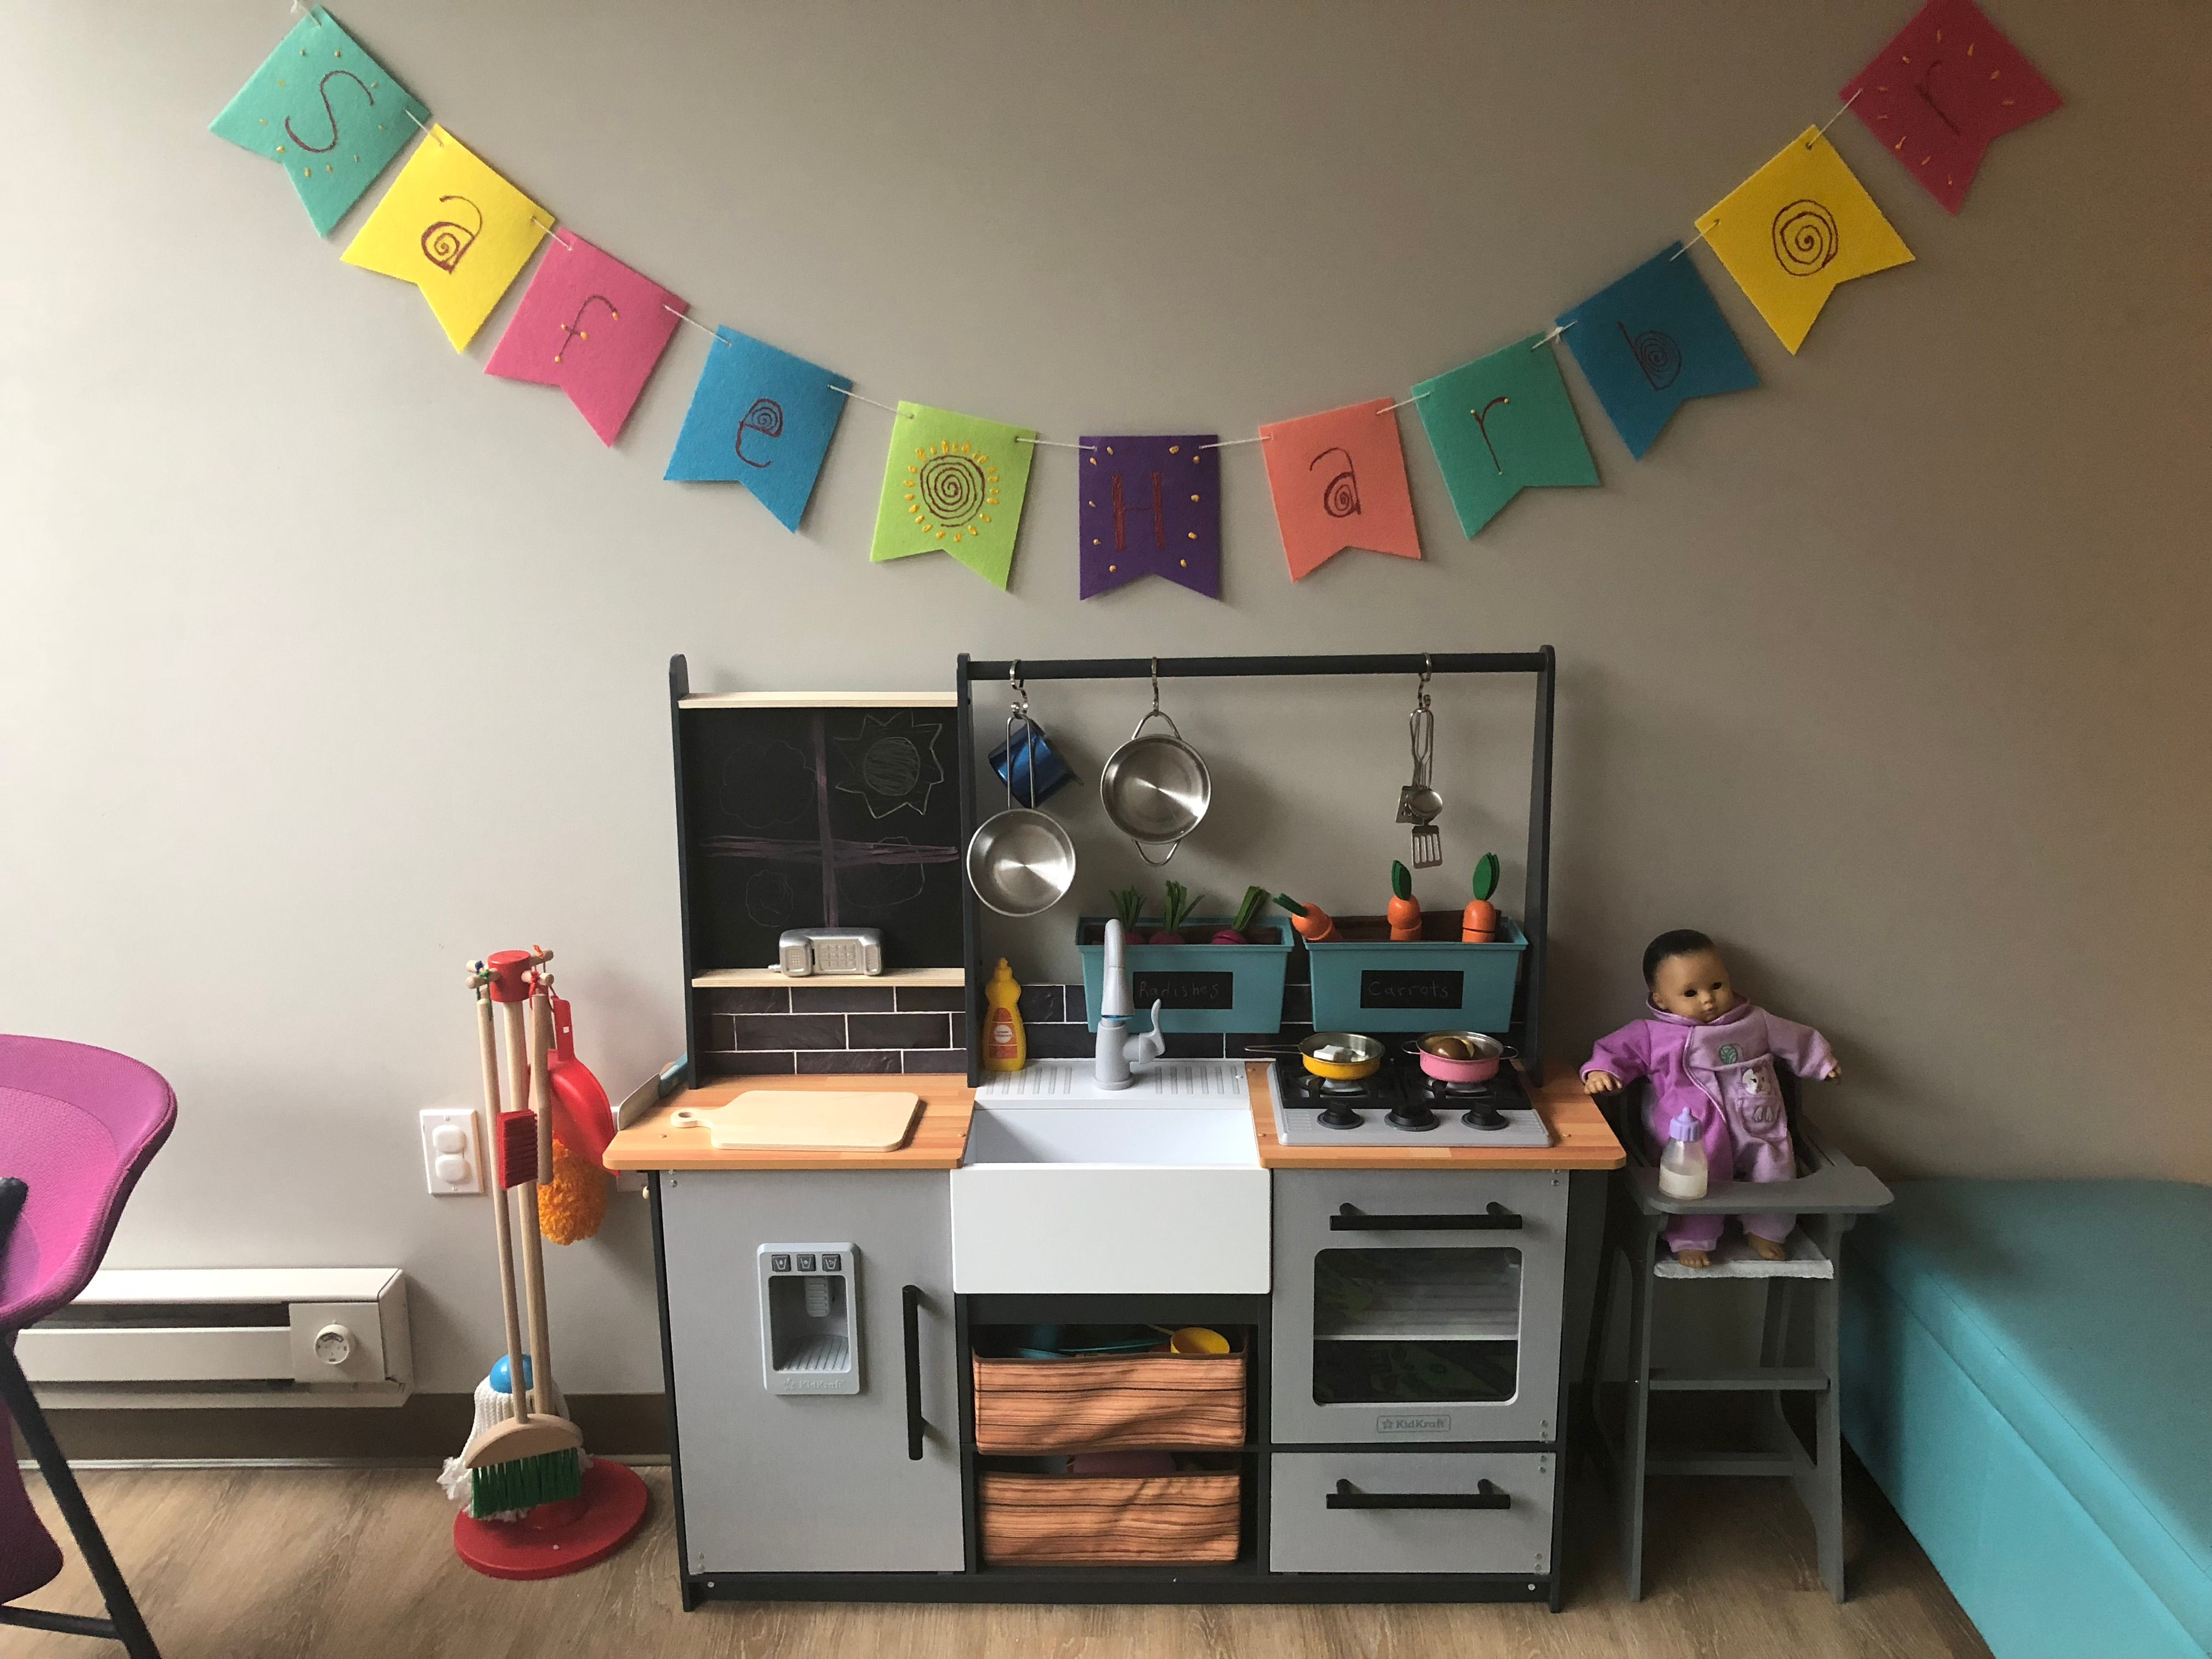 The kitchen is open for kids!